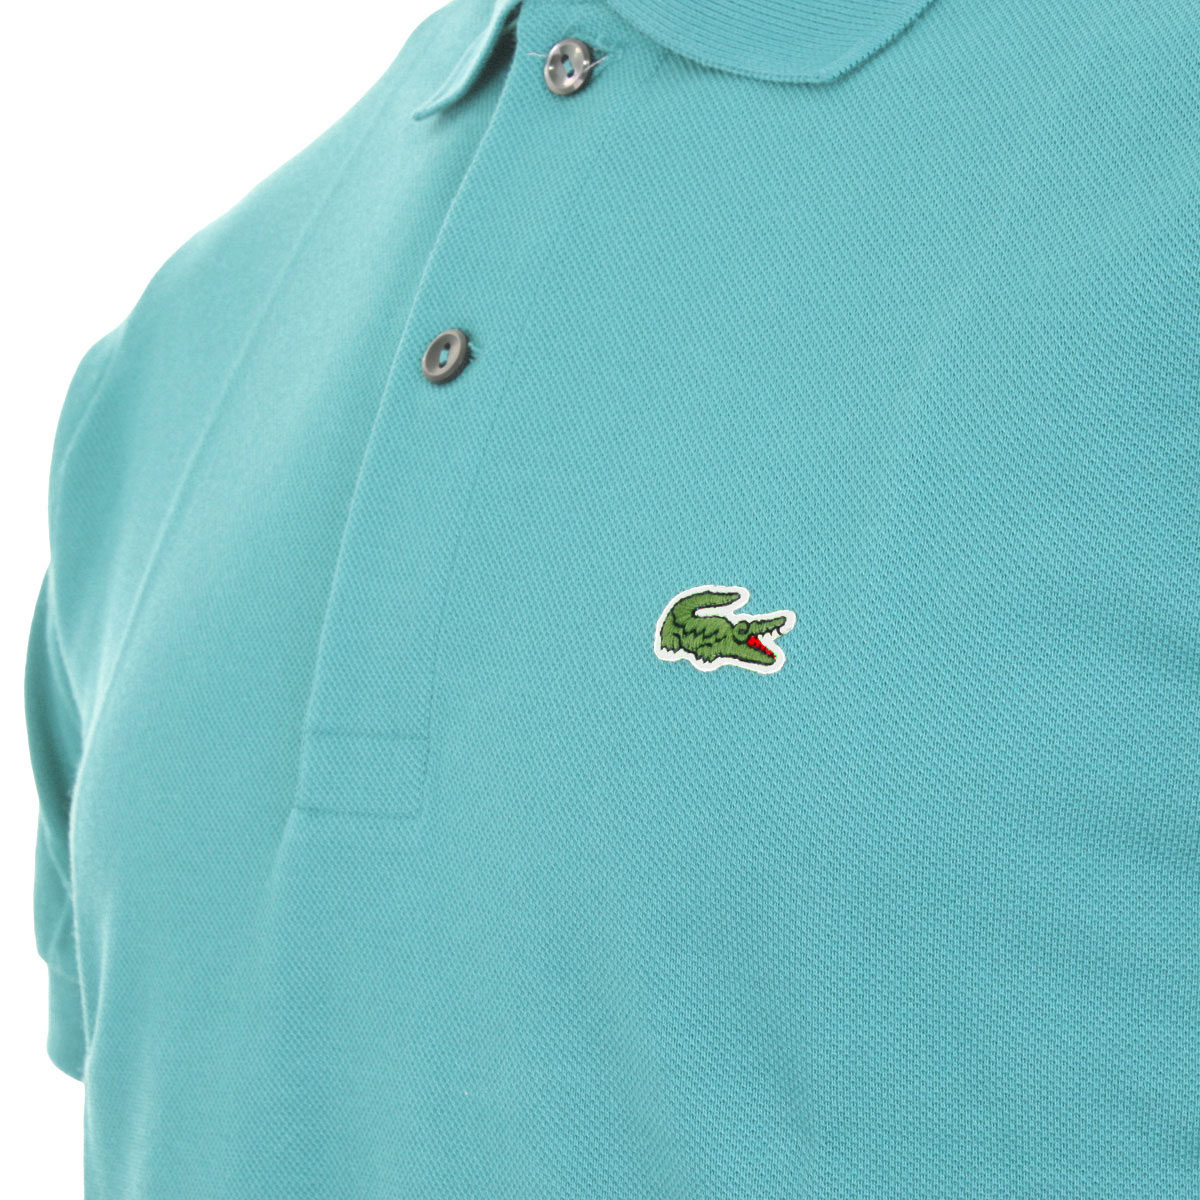 Lacoste-Mens-Classic-Cotton-L1212-Short-Sleeve-Polo-Shirt-31-OFF-RRP thumbnail 22